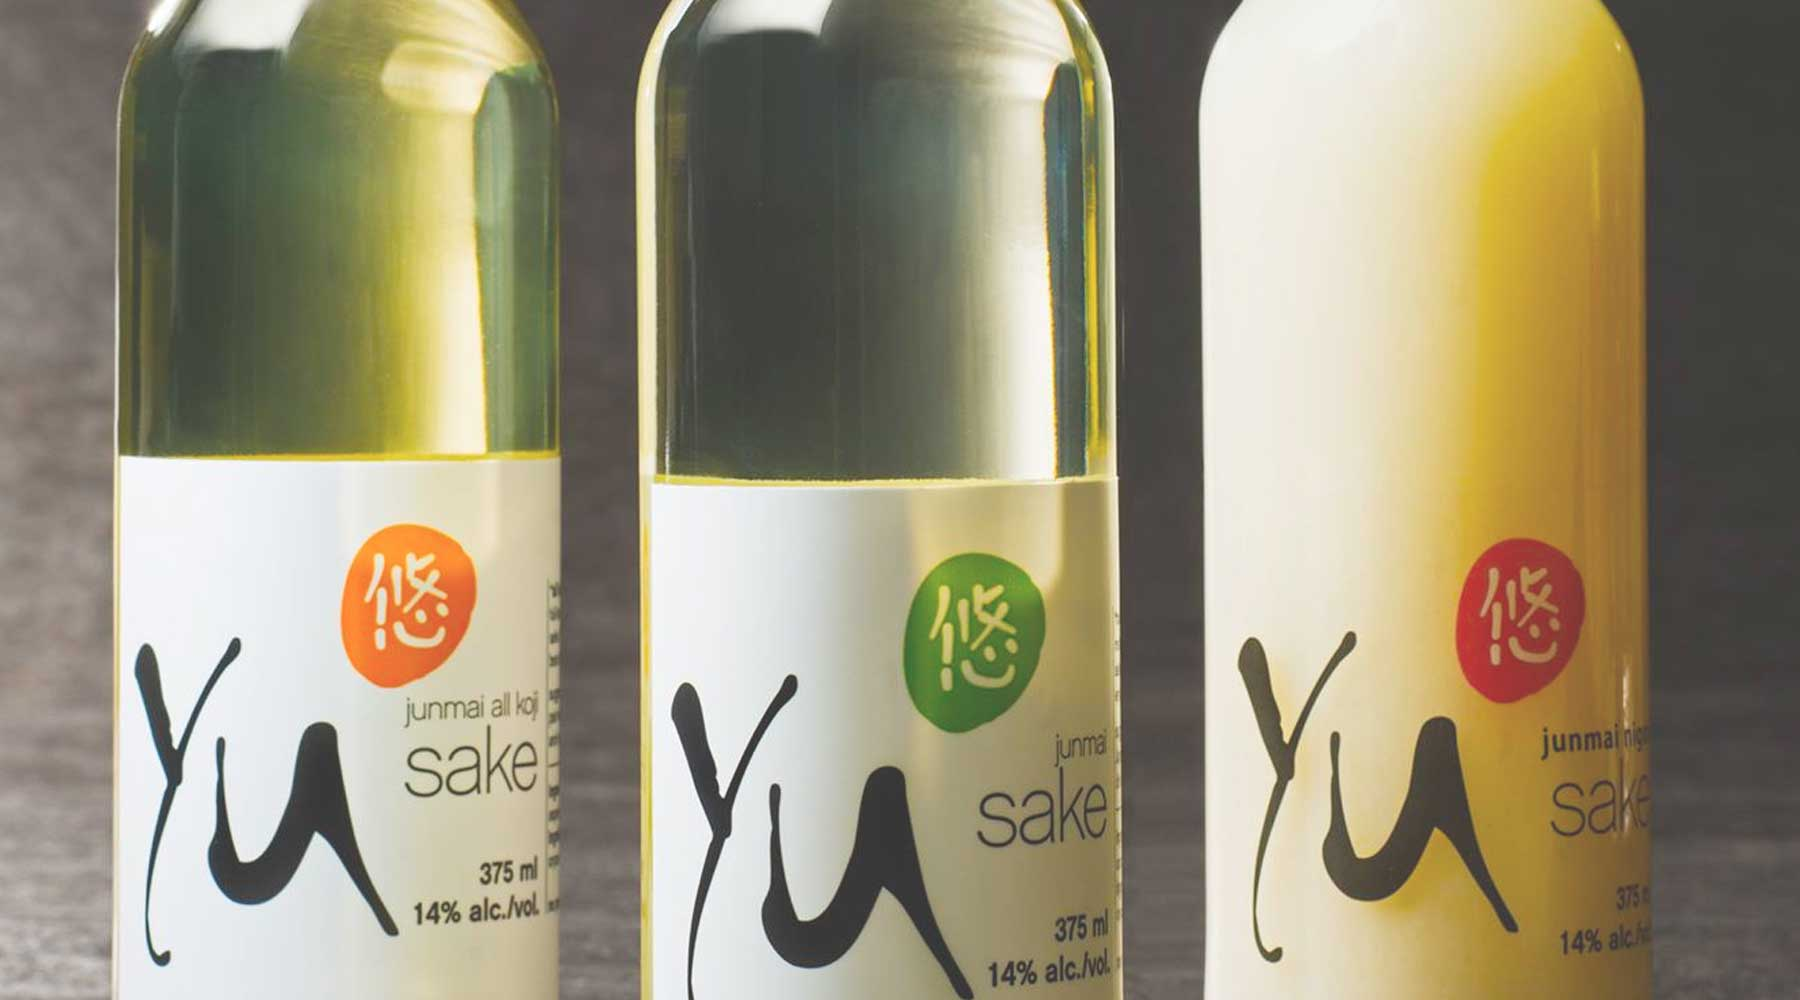 YK3 Sake Producer | Just Wine